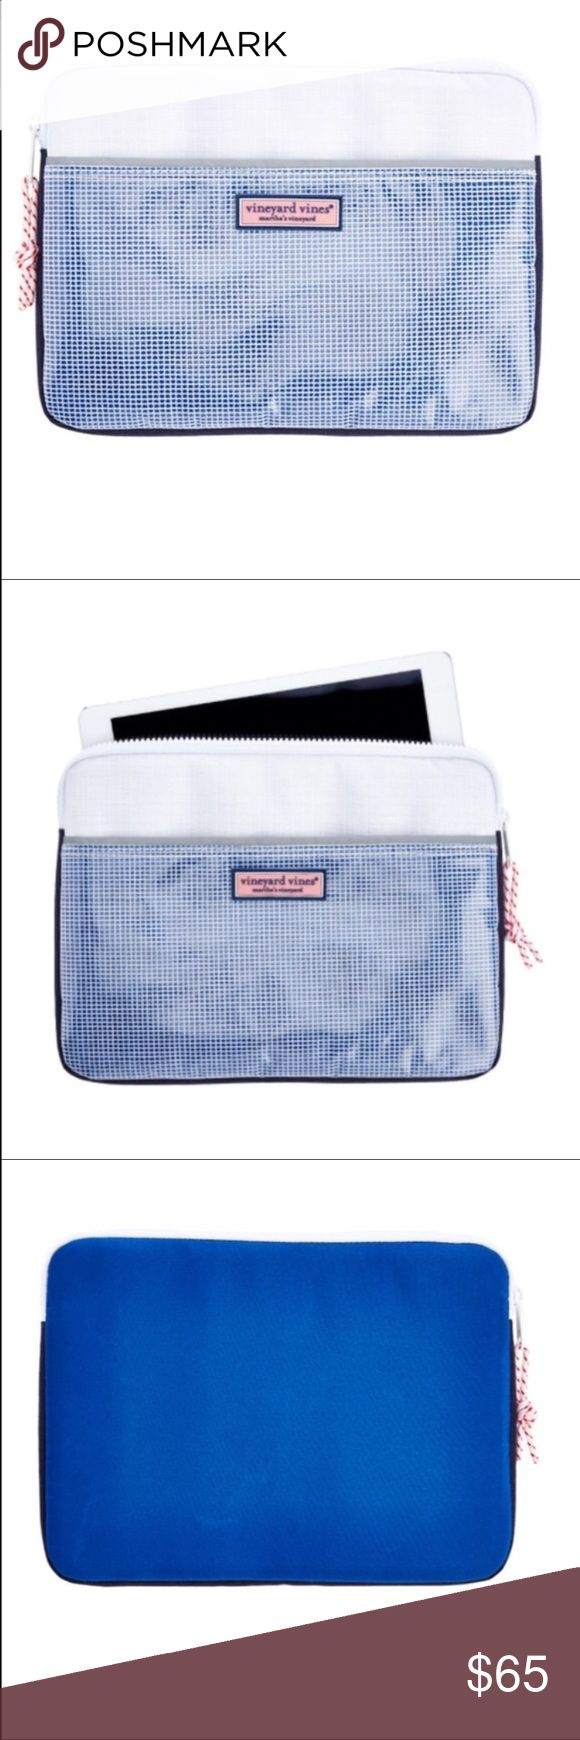 """Vineyard Vines iPad Case Vineyard Vines iPad Case.  New with tags.  Weather the storm!  Lined in cushioning neoprene, this colorful microfiber iPad case protects your tablets on the go.  Fabrics:  100% microfiber with neoprene lining.  Measurements:  11"""" width x 8"""" height x 1"""" depth.  Features:  Vineyard Vines Rubber logo box in front exterior.  Zip closure.  Neoprene lining.  Exterior Velcro pocket.  Care instructions:  spot clean. Vineyard Vines Accessories Tablet Cases"""